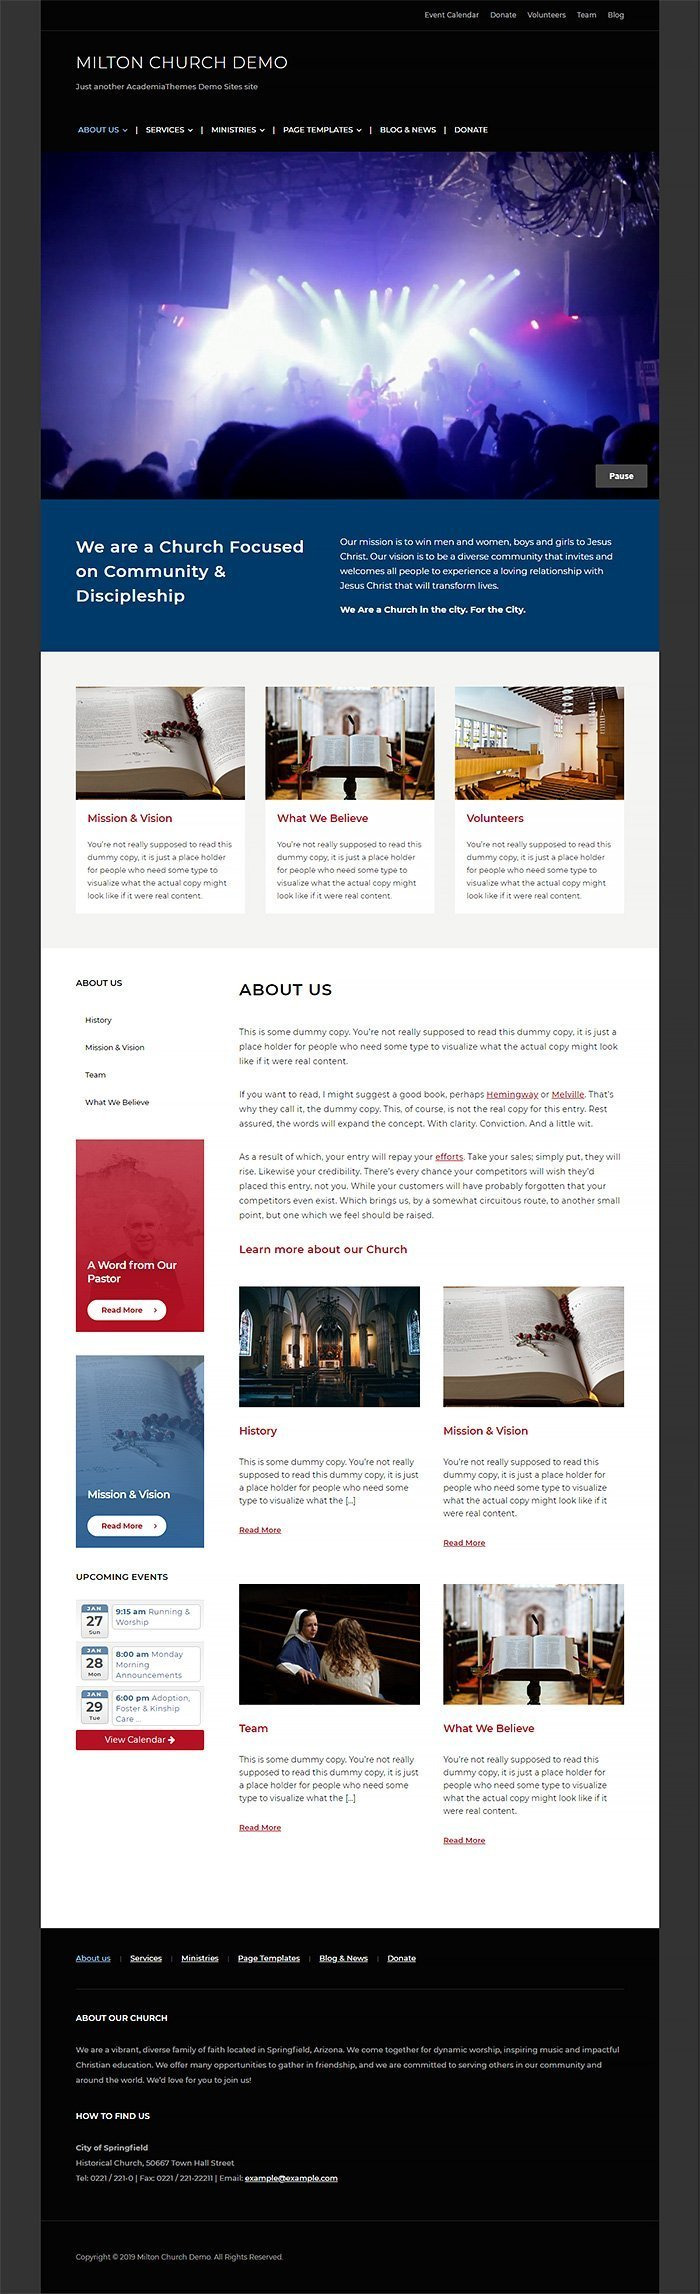 Milton WordPress Theme - Church Website Demo Homepage Preview